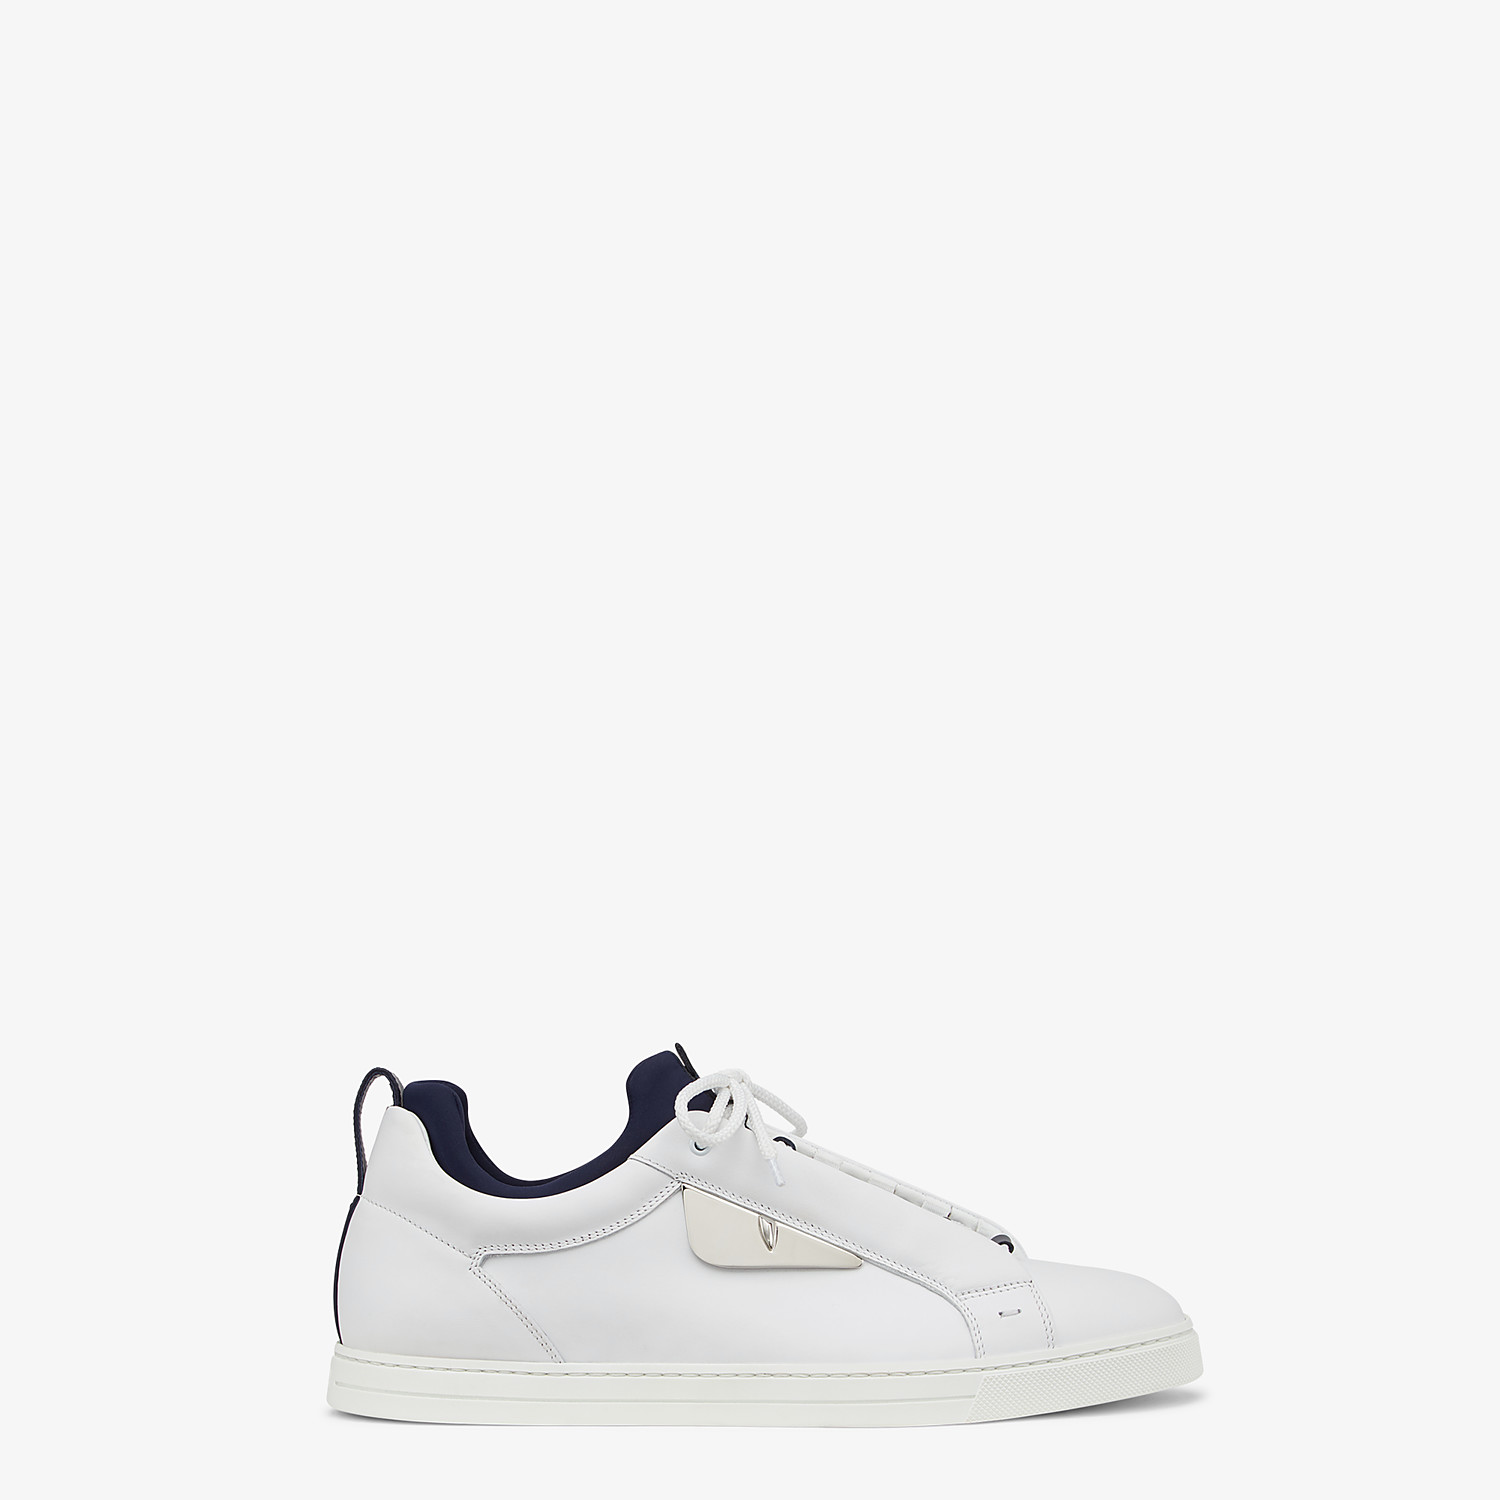 FENDI SNEAKERS - White leather low-tops - view 1 detail